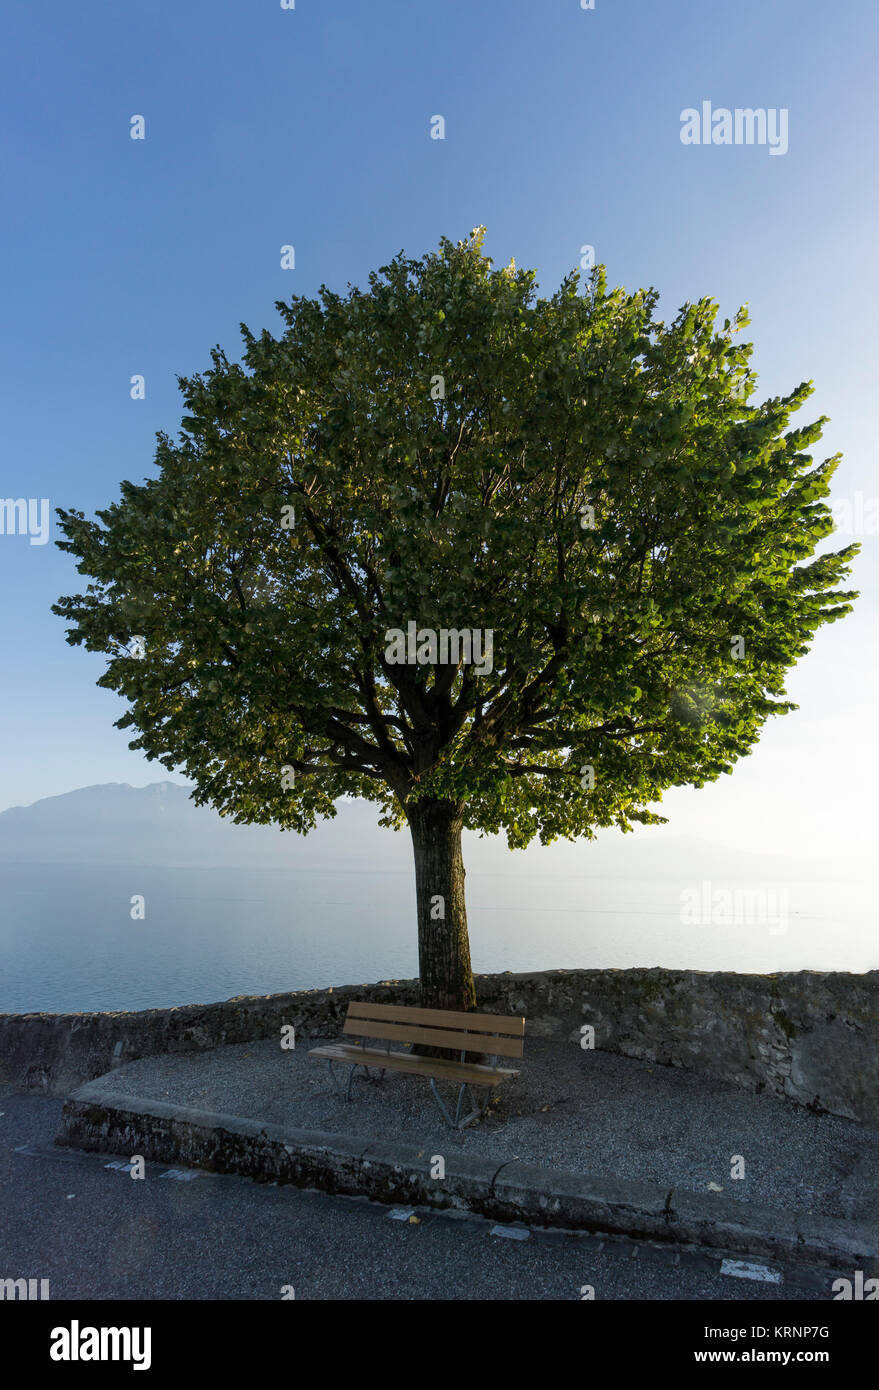 Tree , Rivaz,  Lavaux region, Lake Geneva, Swiss Alps,  Switzerland - Stock Image